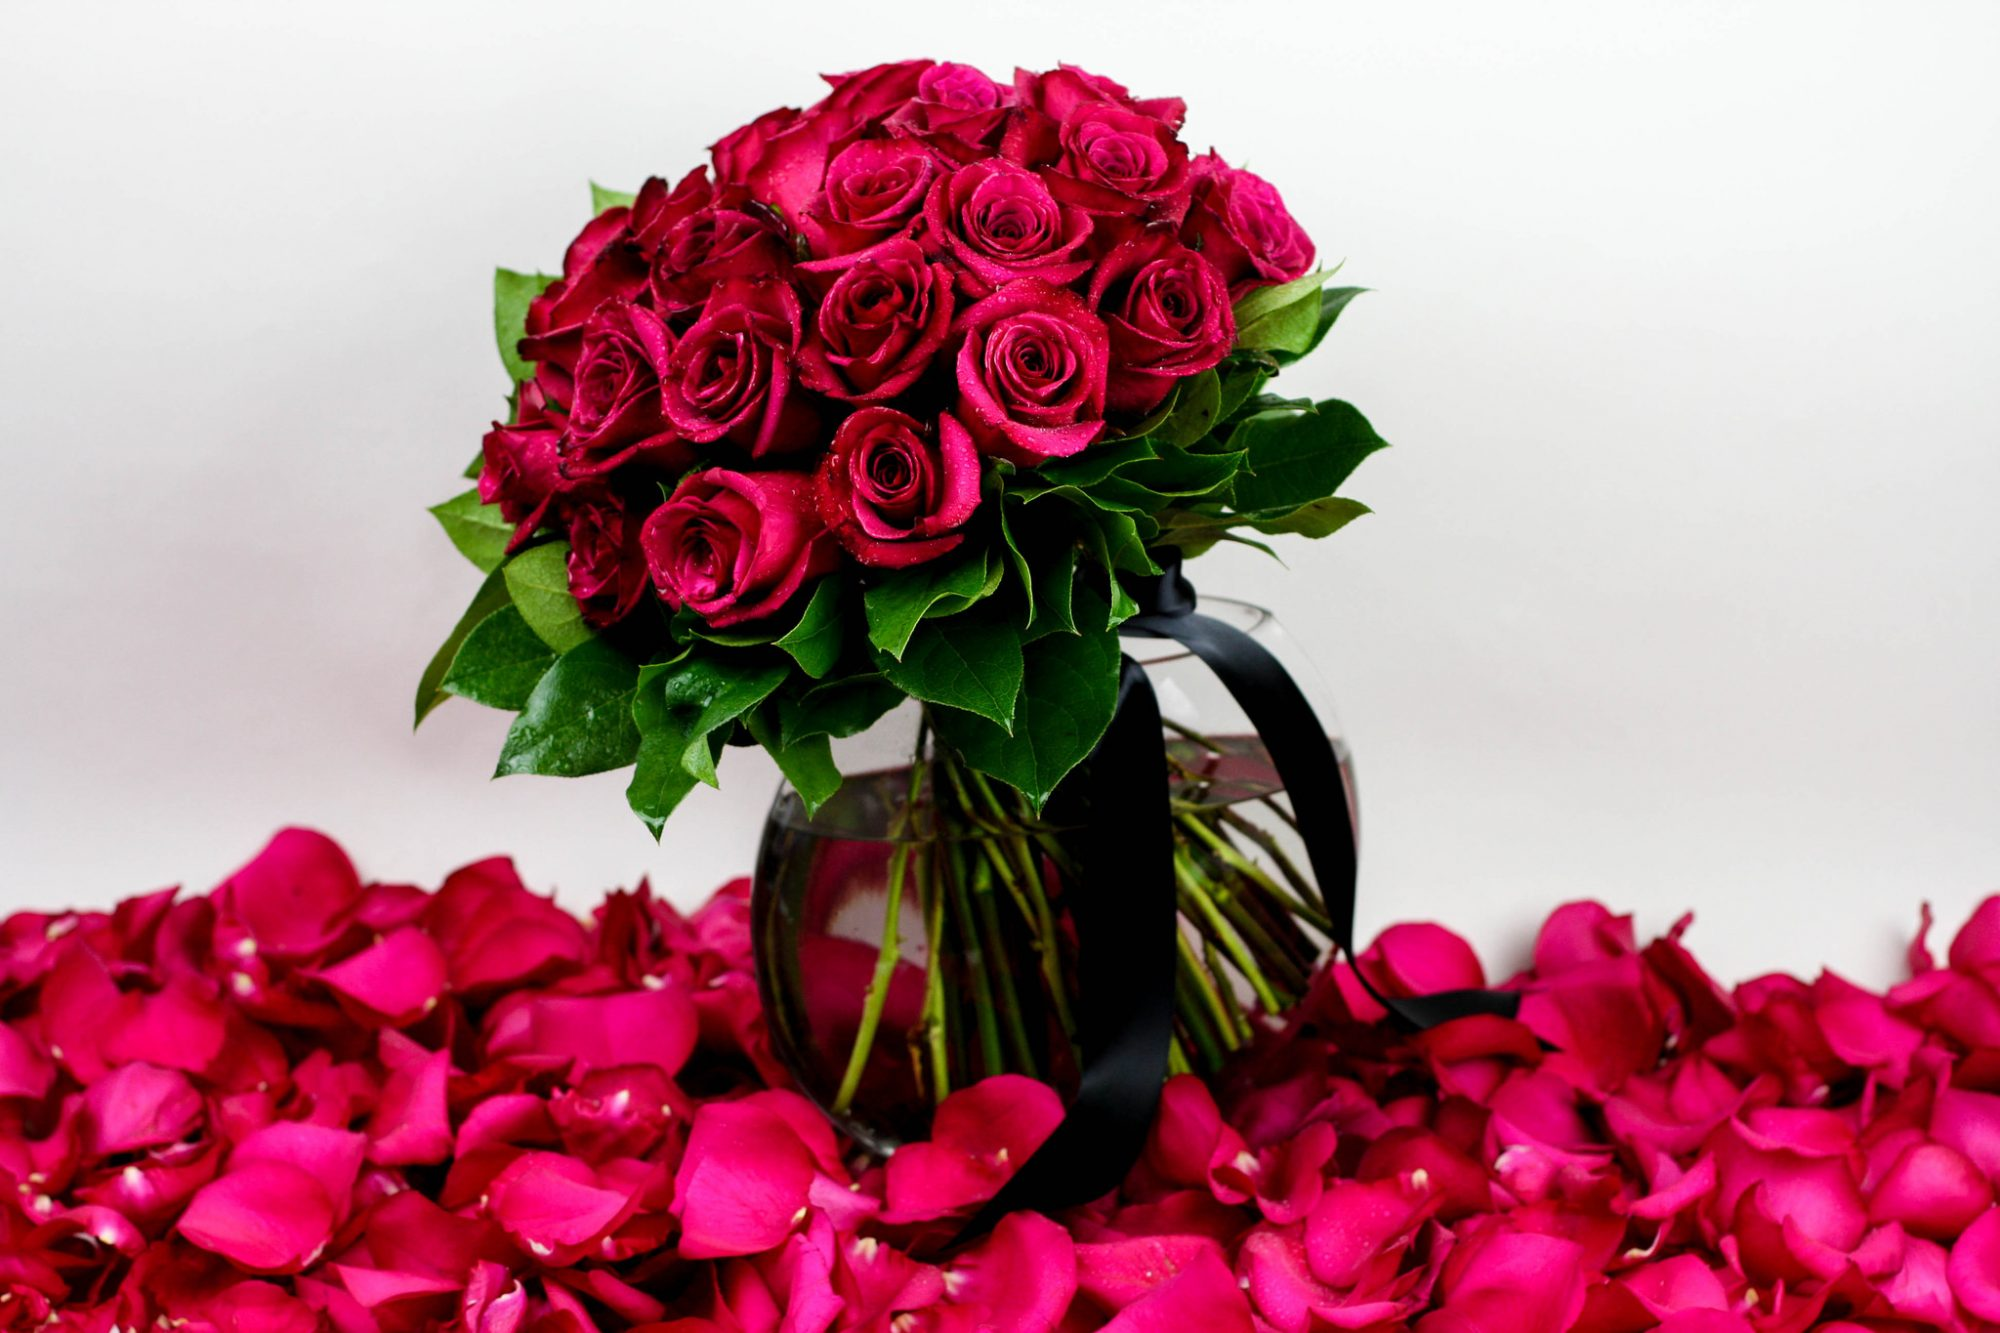 valentine flower arrangement ideas from the pros  real simple, Natural flower